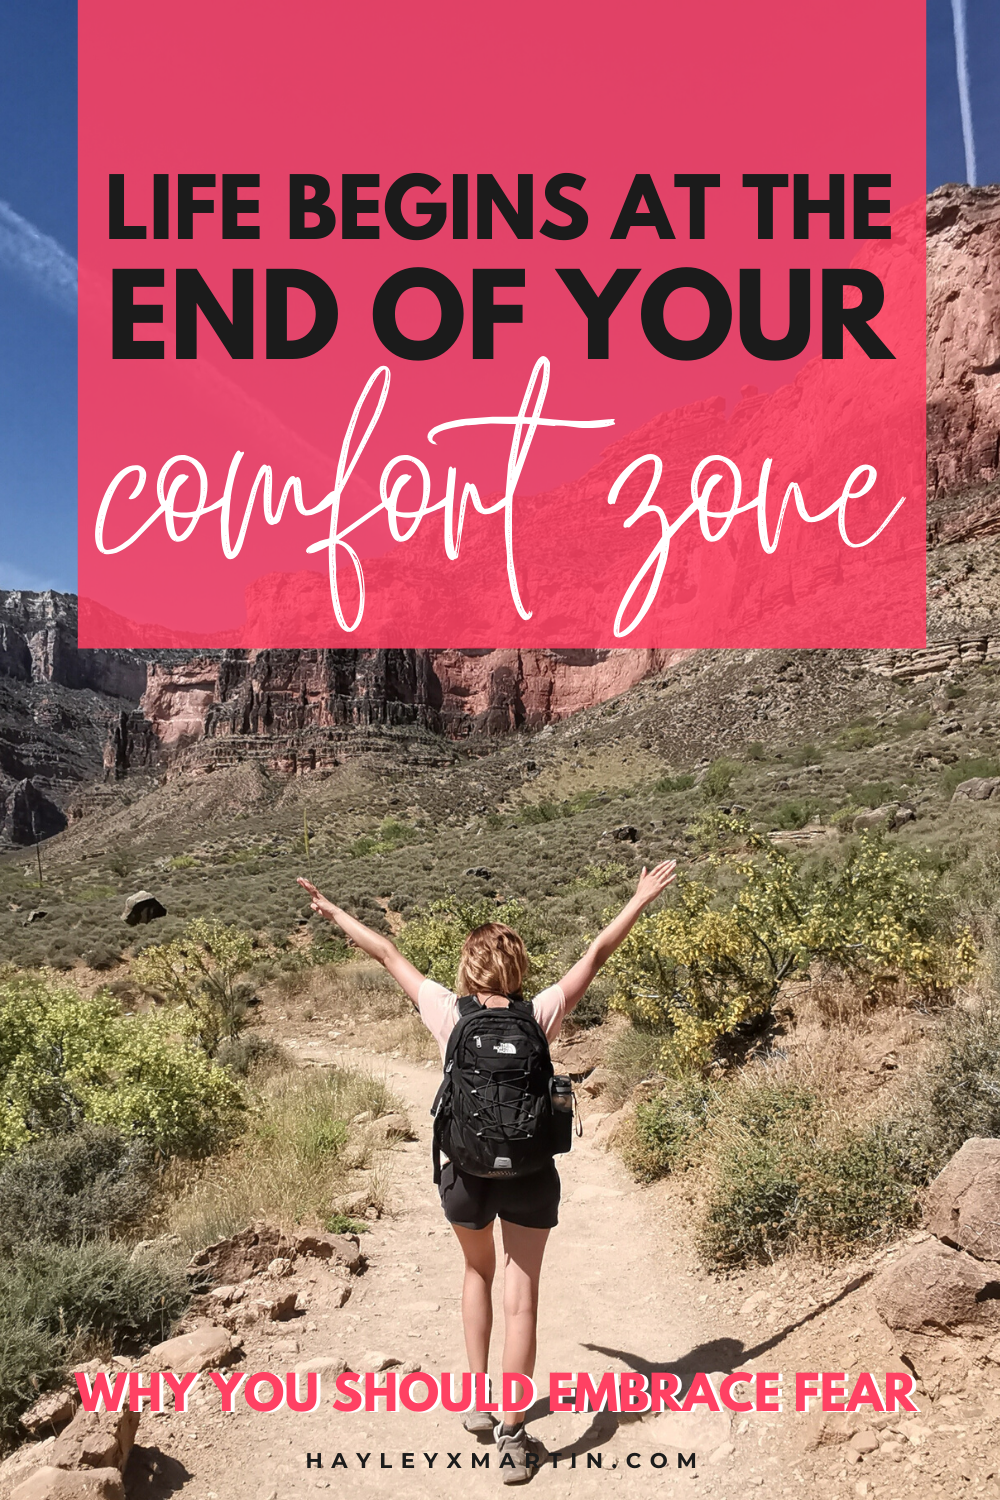 LIFE BEGINS AT THE END OF YOUR COMFORT ZONE | WHY YOU SHOULD EMBRACE FEAR | HAYLEYXMARTIN